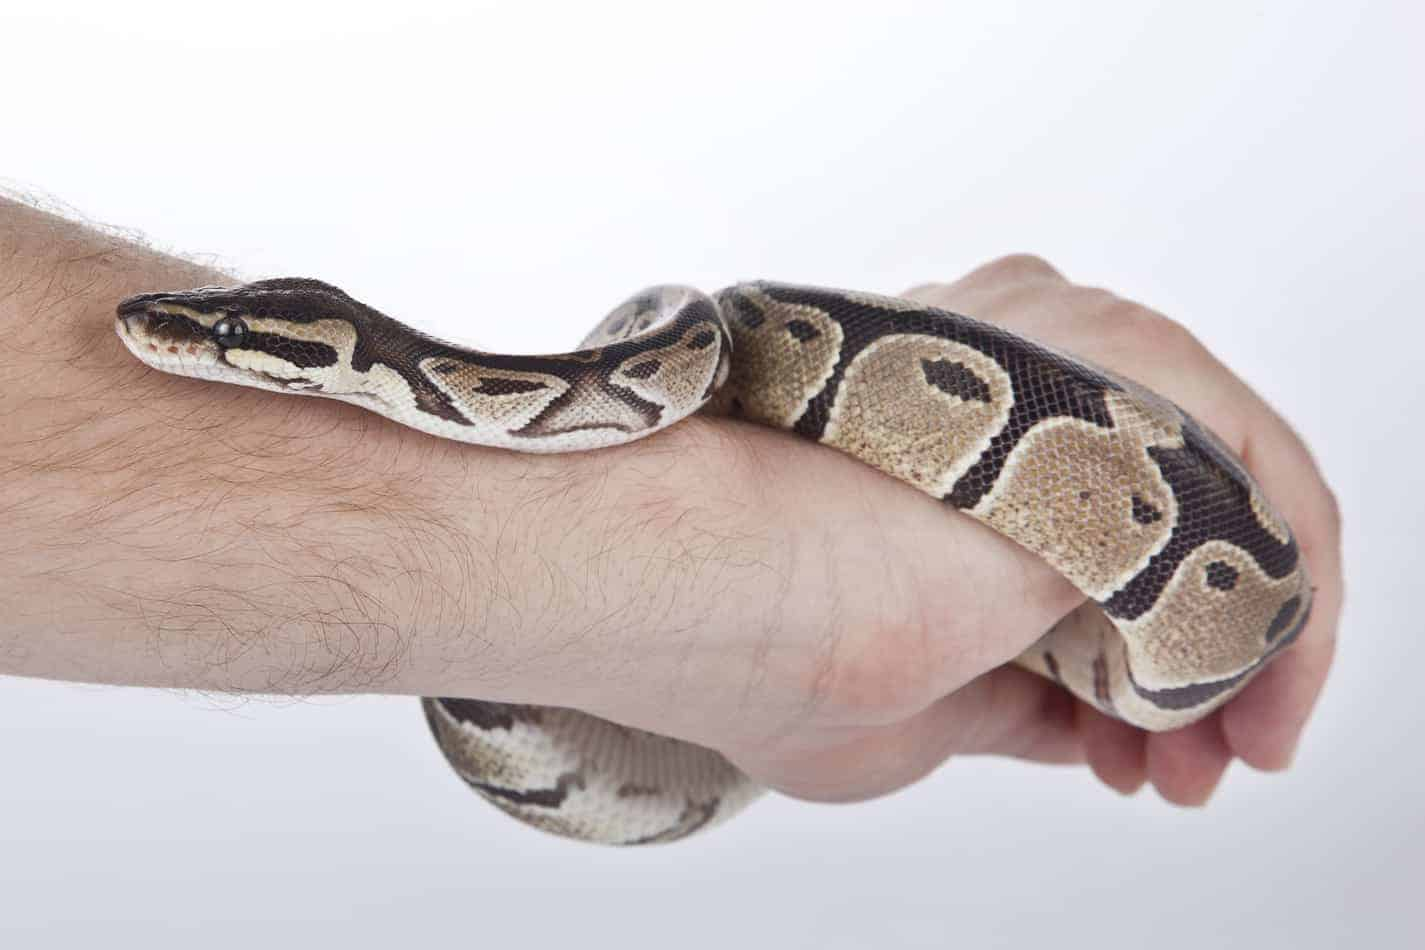 Buyer's Guide: Best Enclosures for Ball Pythons